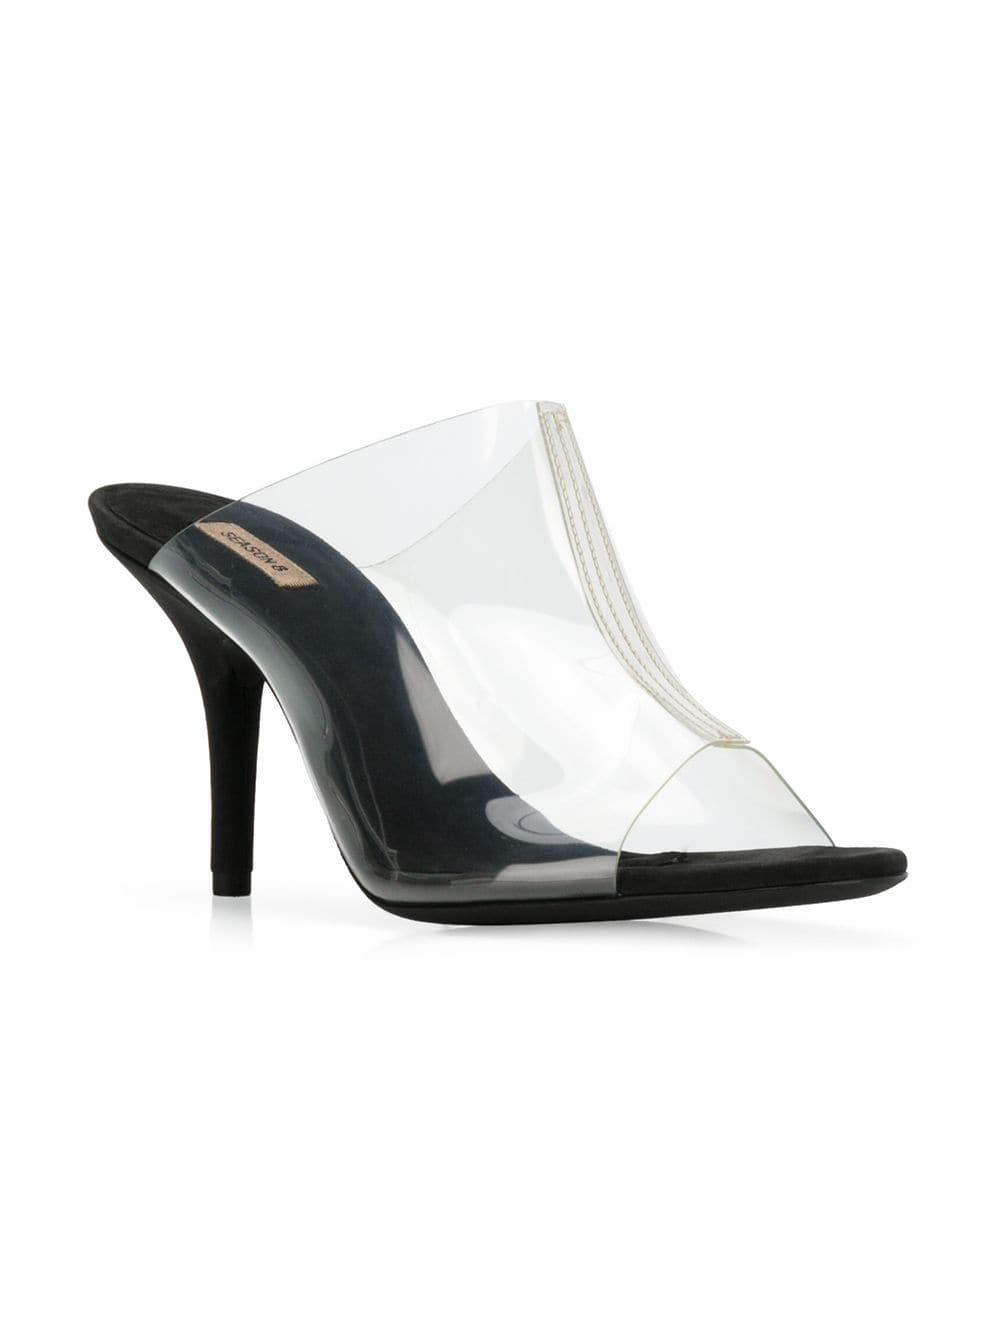 YEEZY Season 8 Clear Front Panel Mules - Maison De Fashion